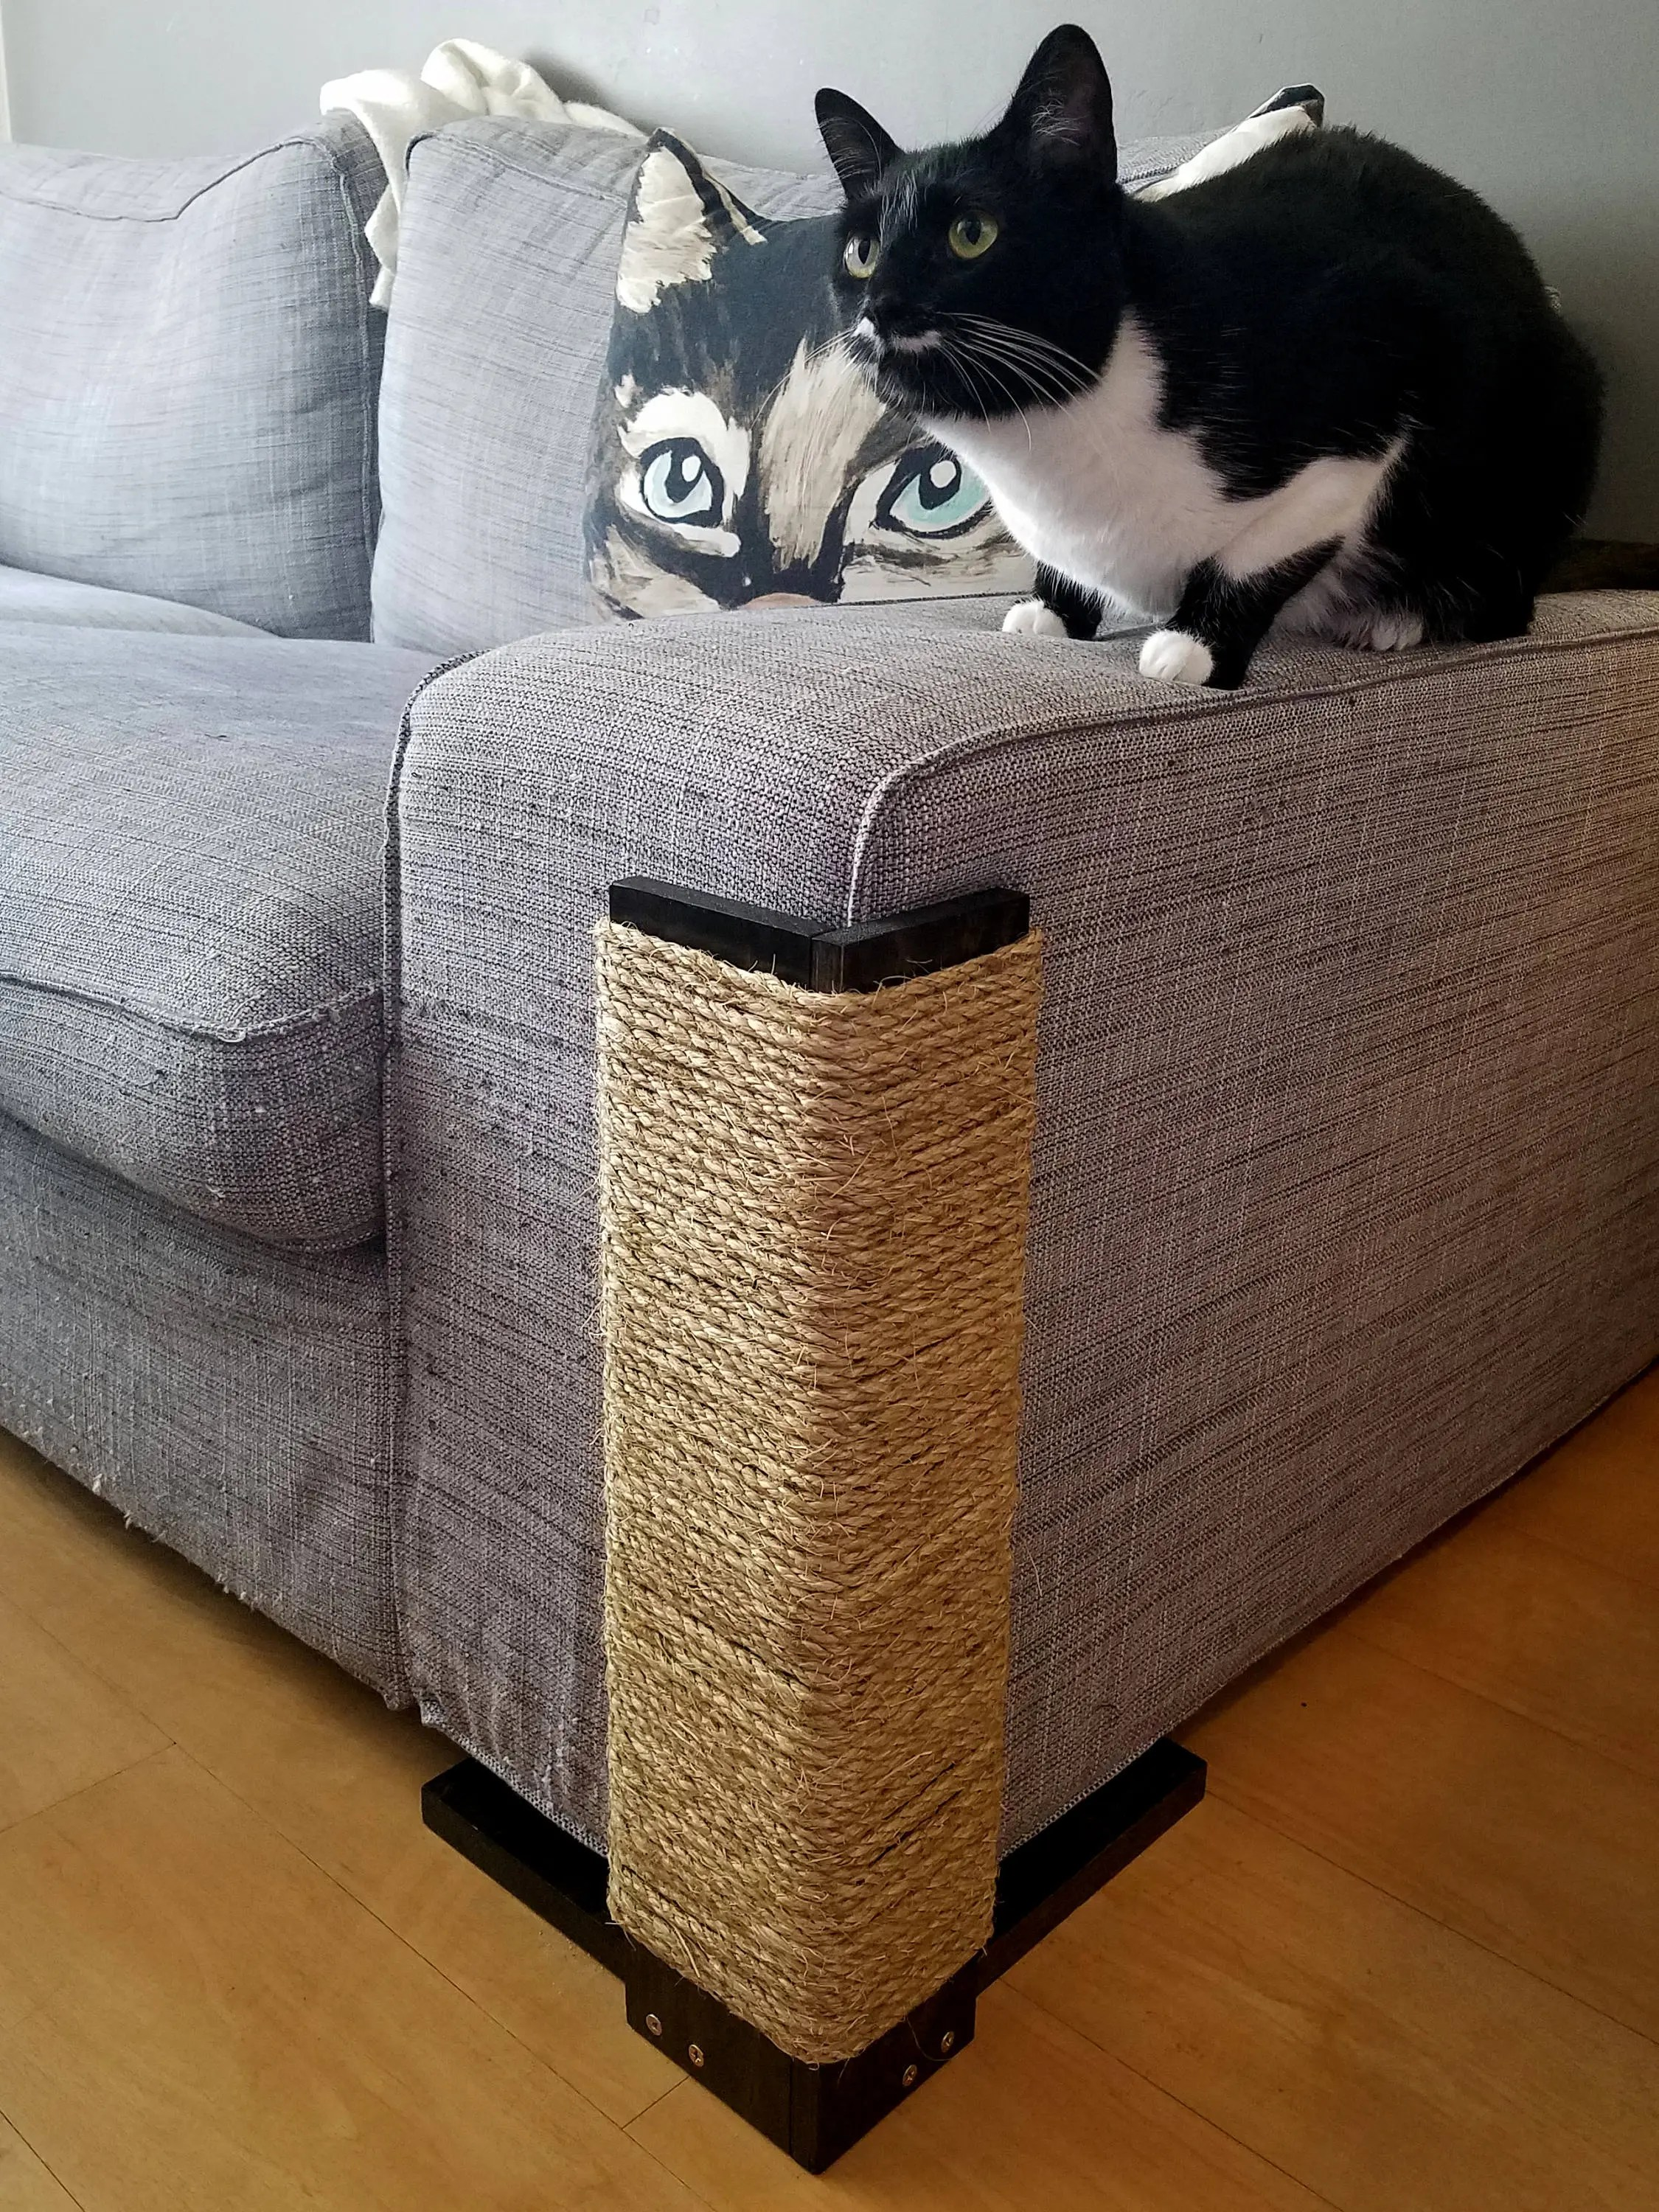 how to make a sofa bed from scratch hamilton and leather gallery review couch corner cat scratching post 18 24 inches tall stained